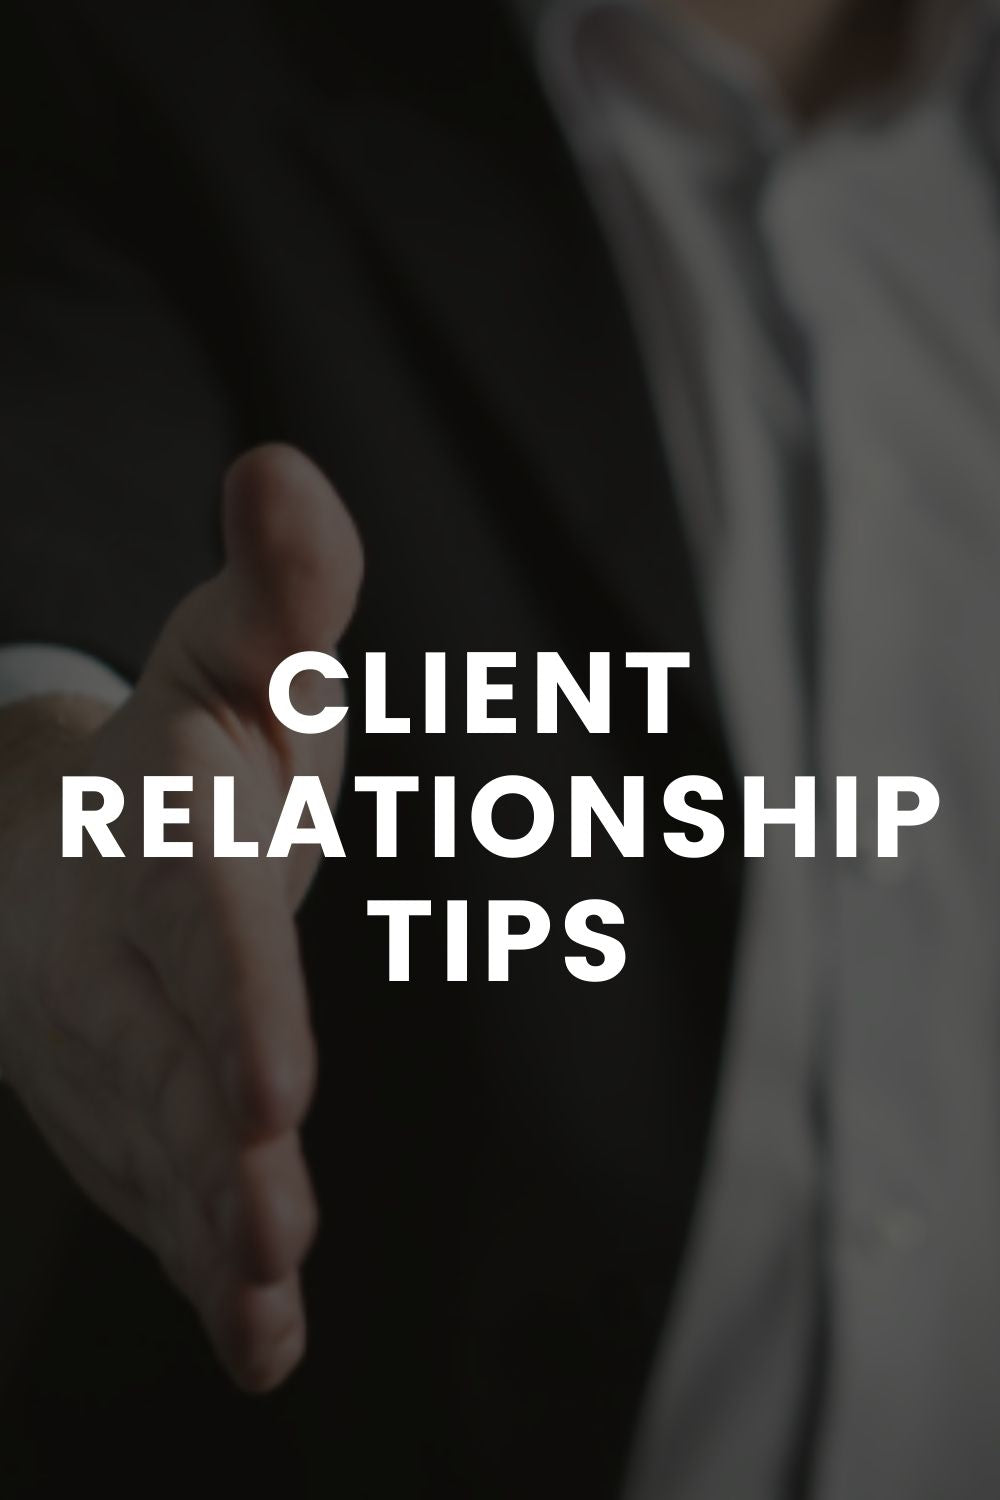 CLIENT  RELATIONSHIP TIPS